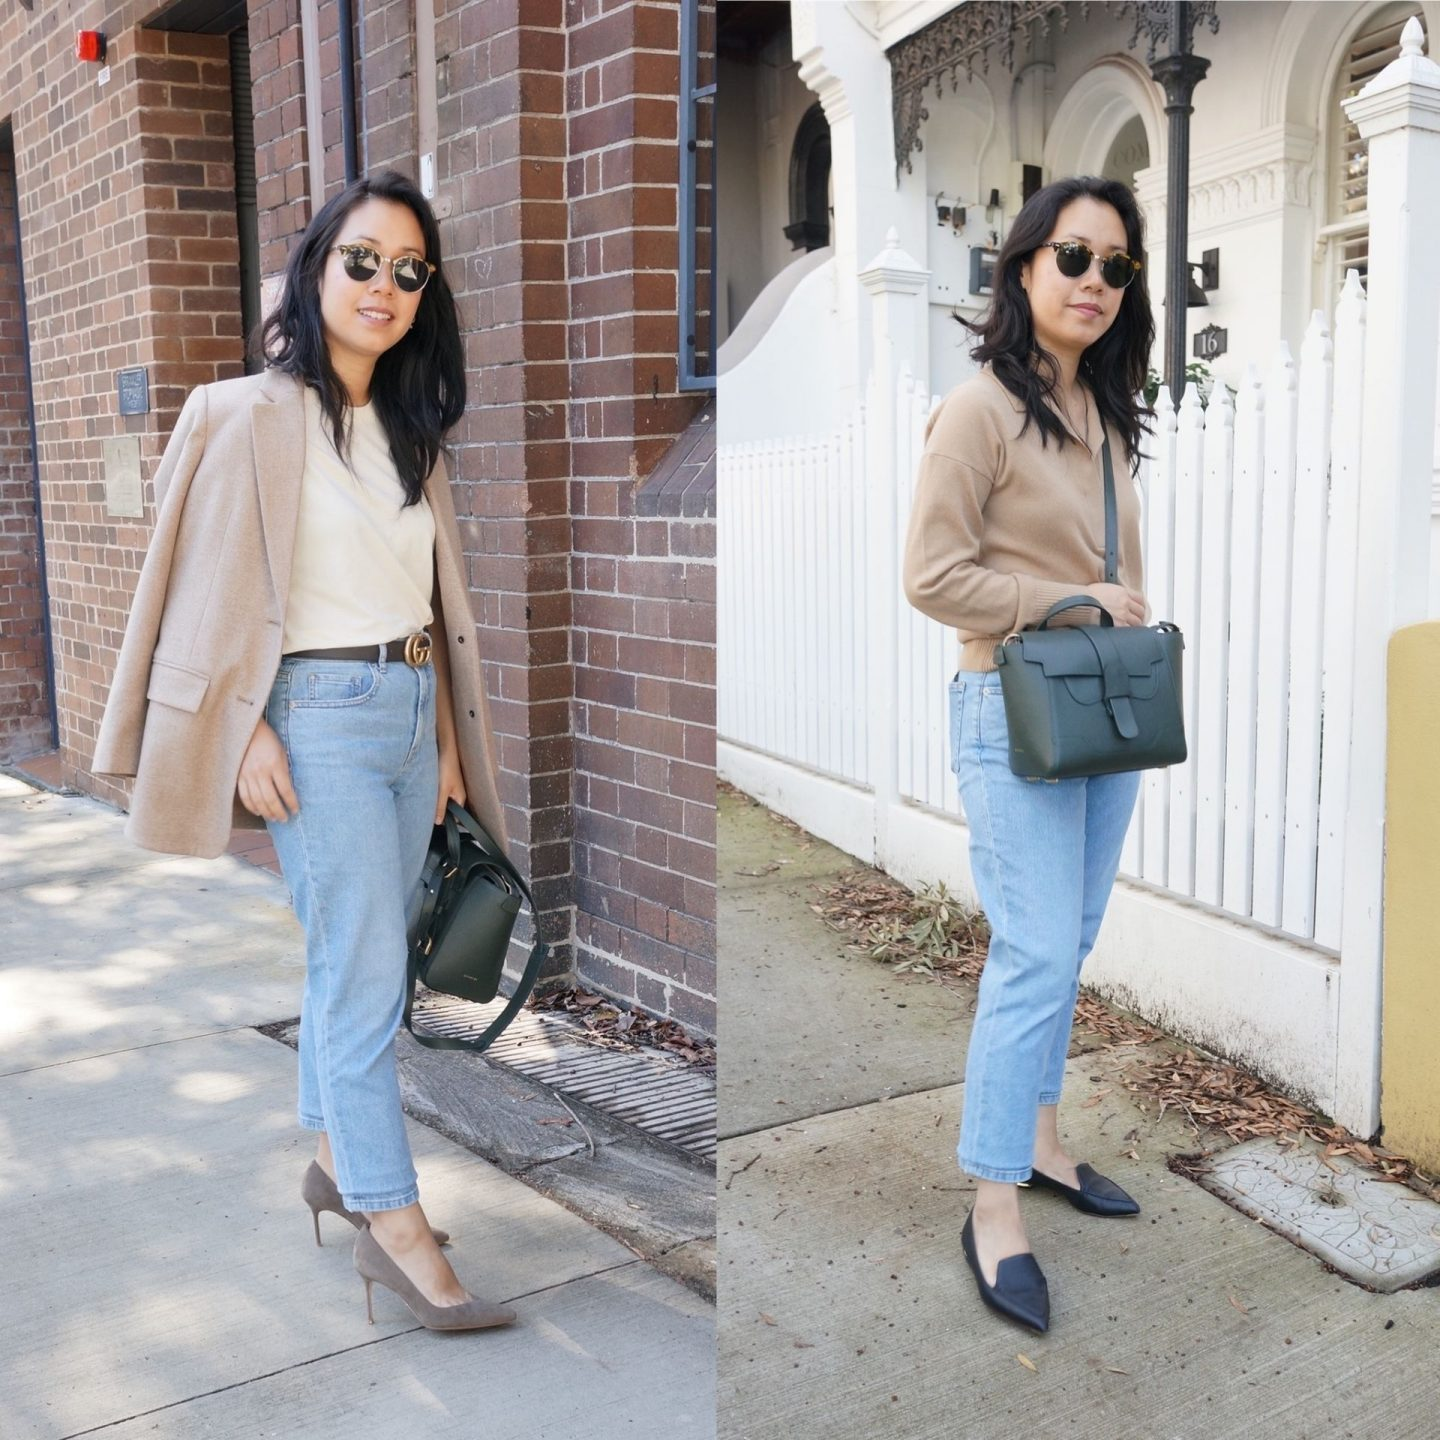 collage of woman wearing smart casual outfits and senreve mini maestra bag in blog post revieiwng the bag